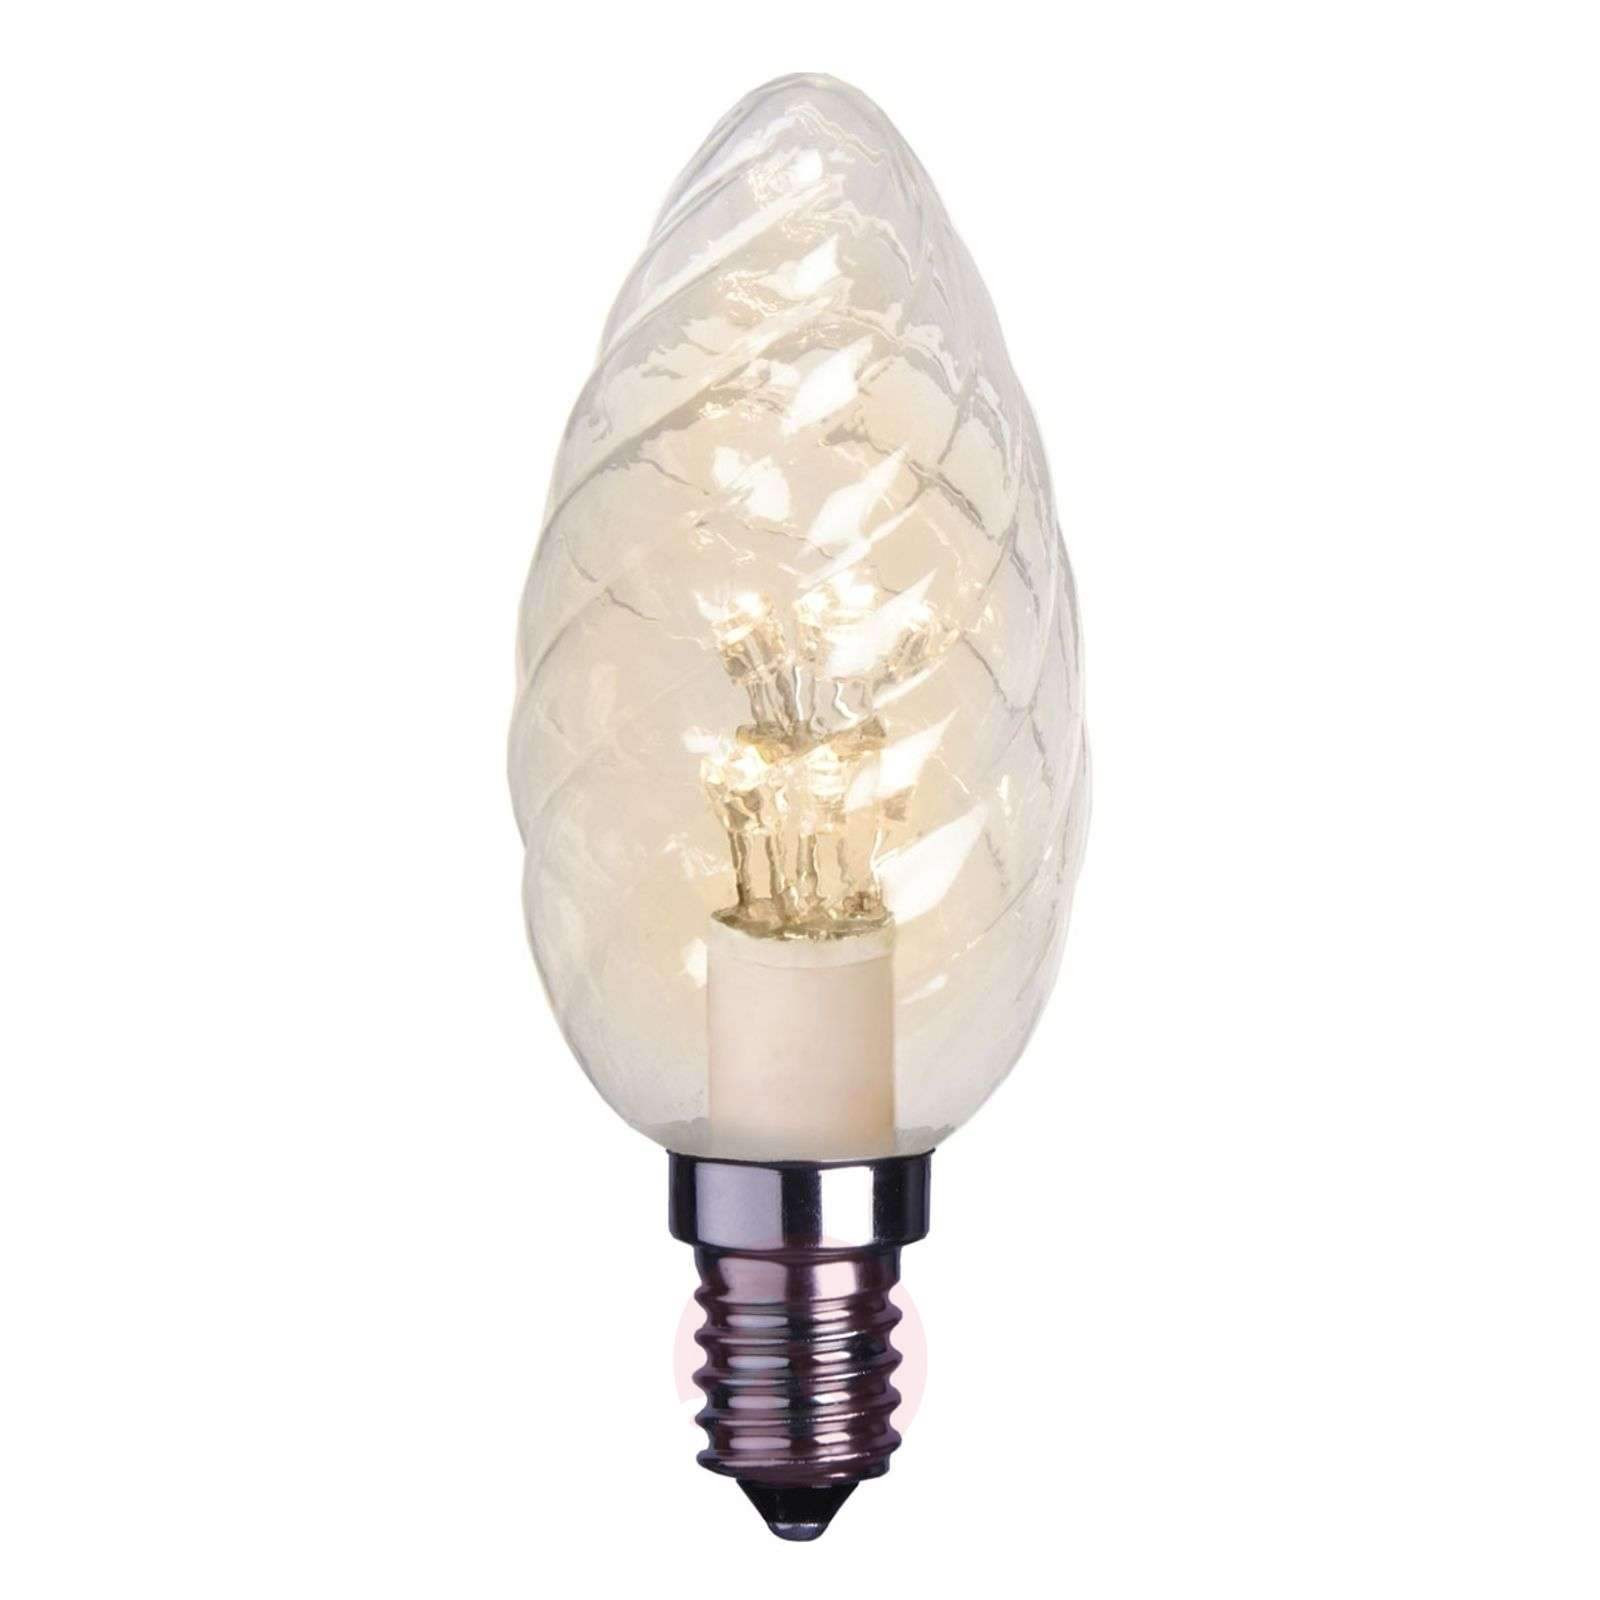 E14 0.9 W clear LED candle bulb twisted-1522106X-01